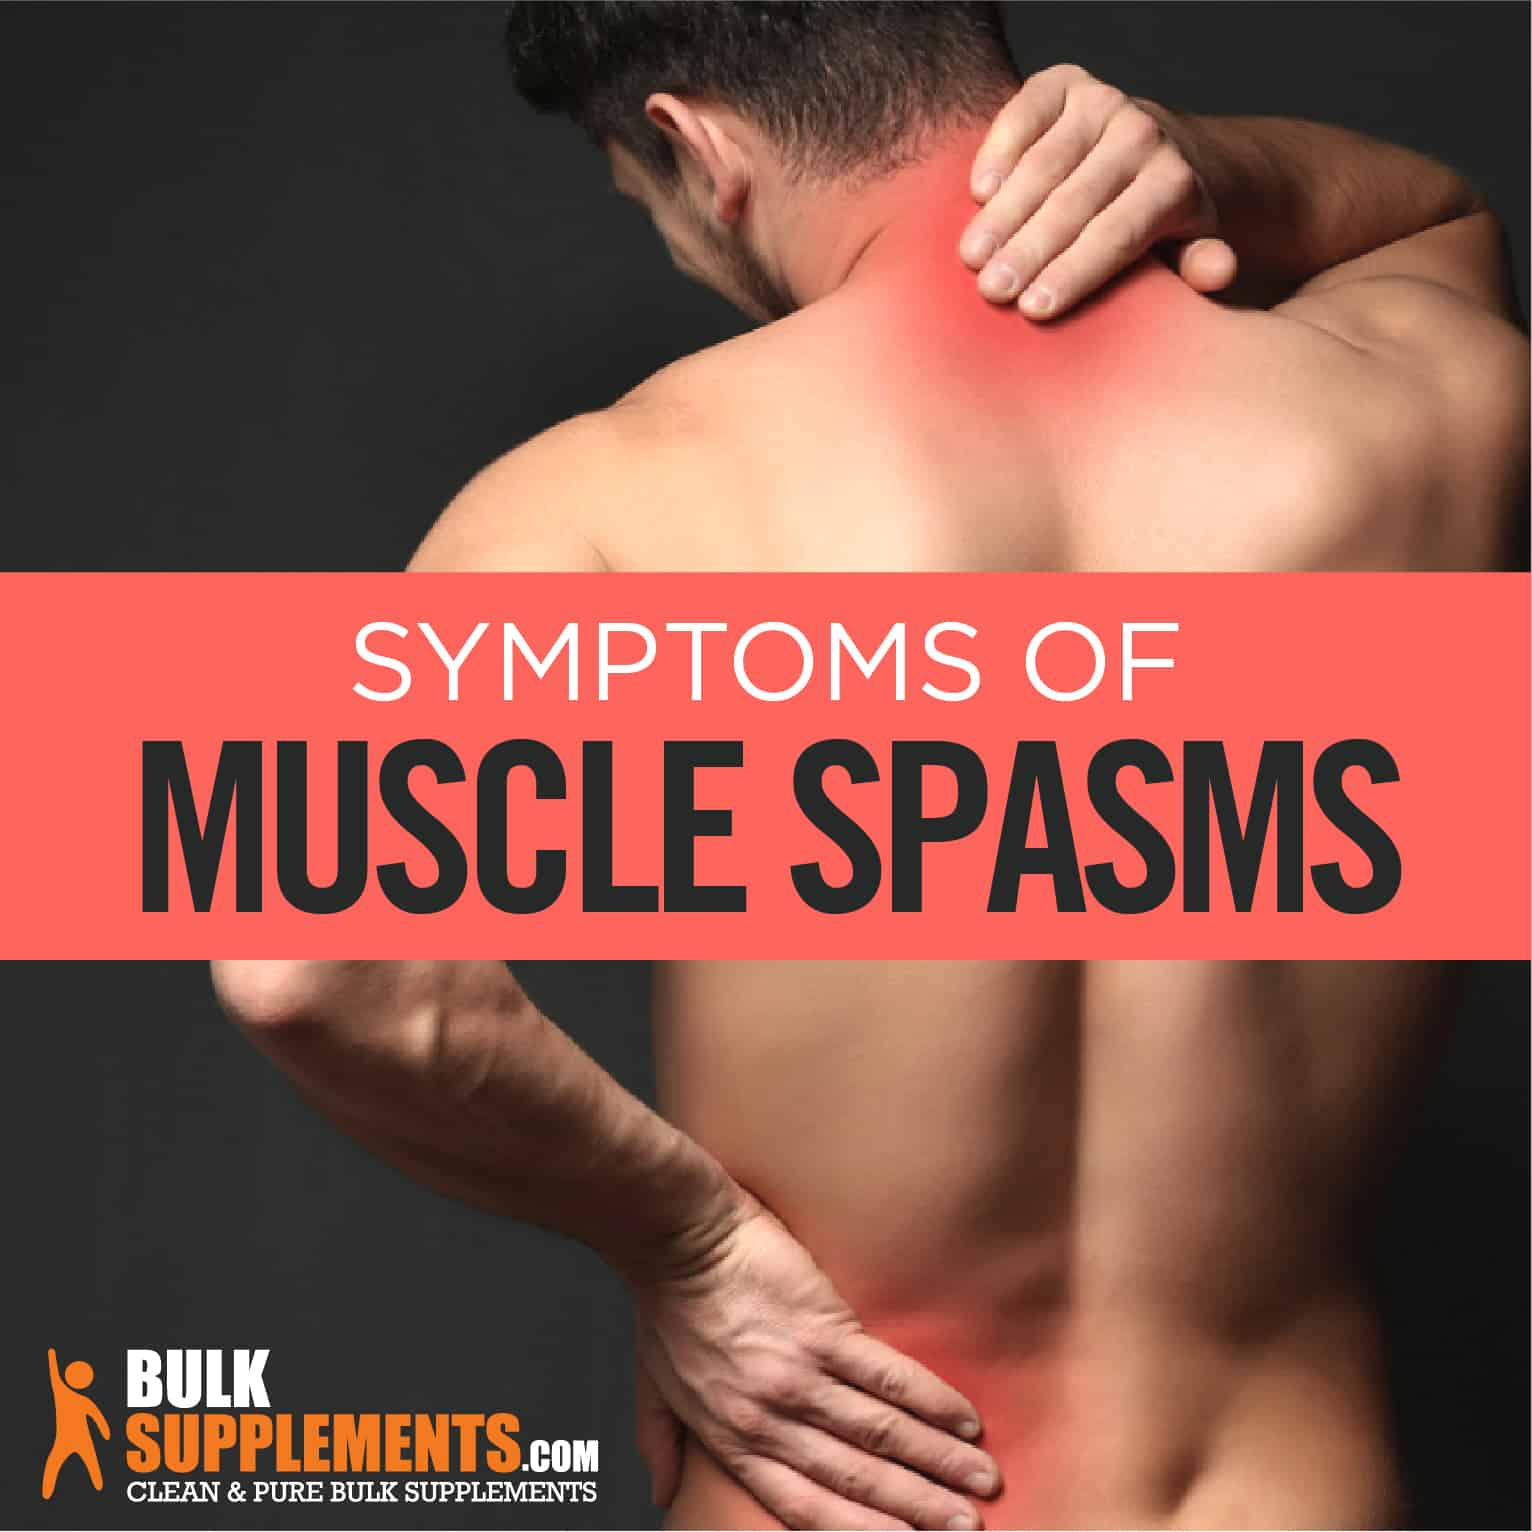 Muscles Spasms